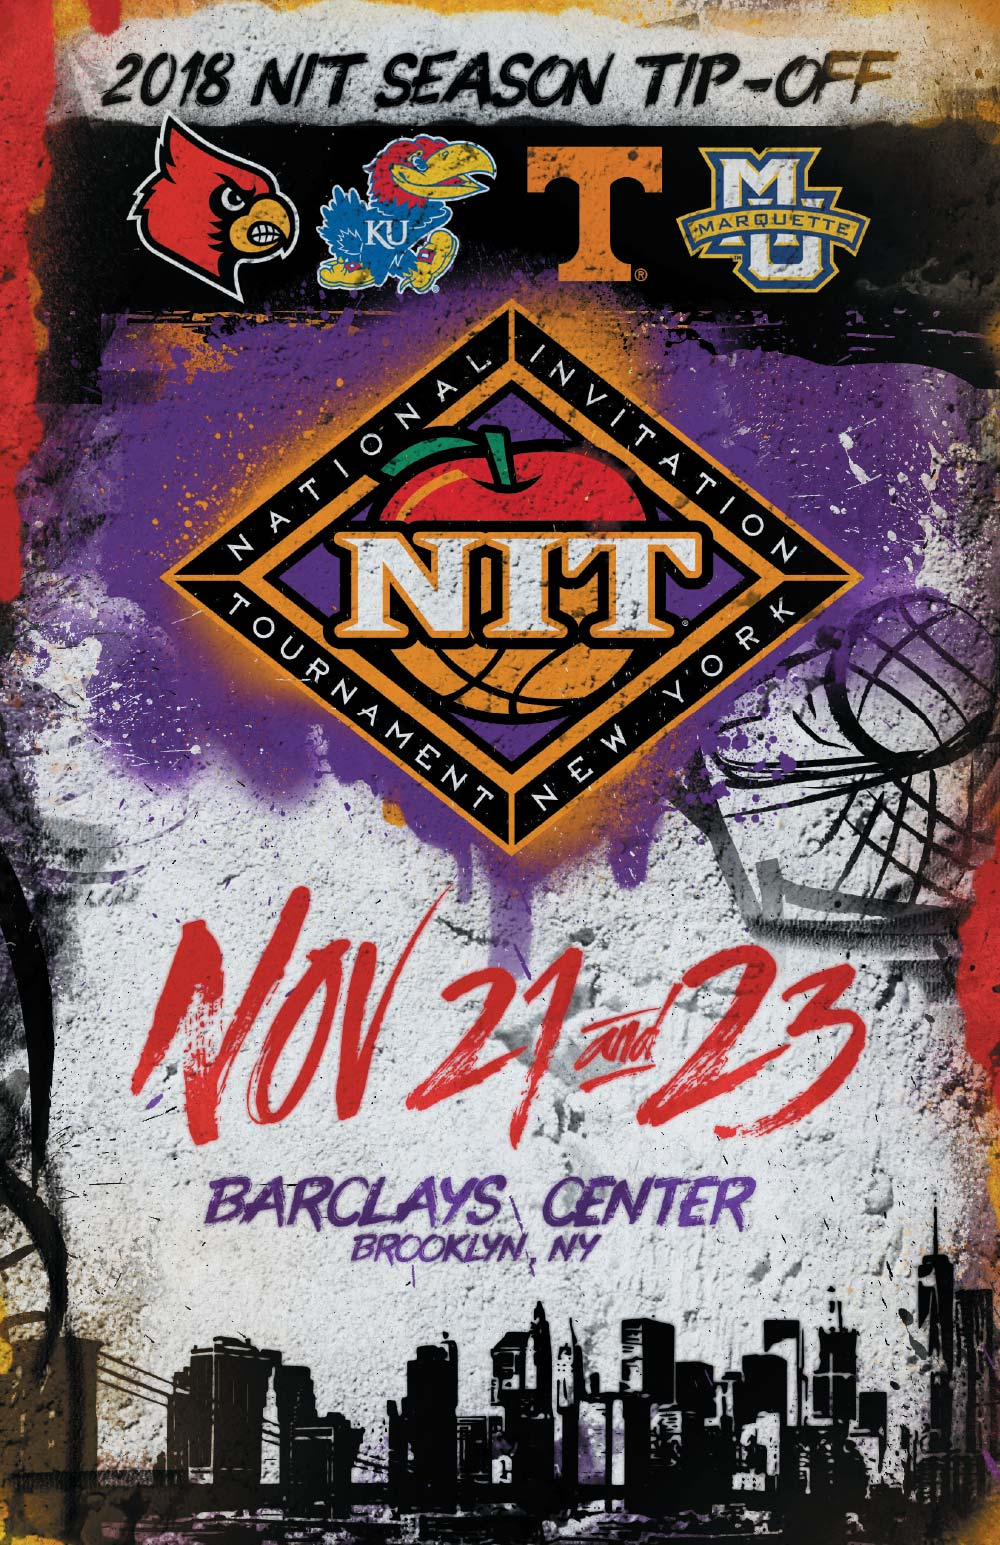 2018 Tip-Off Program Cover<br><span>National Invitational Tournament</span>